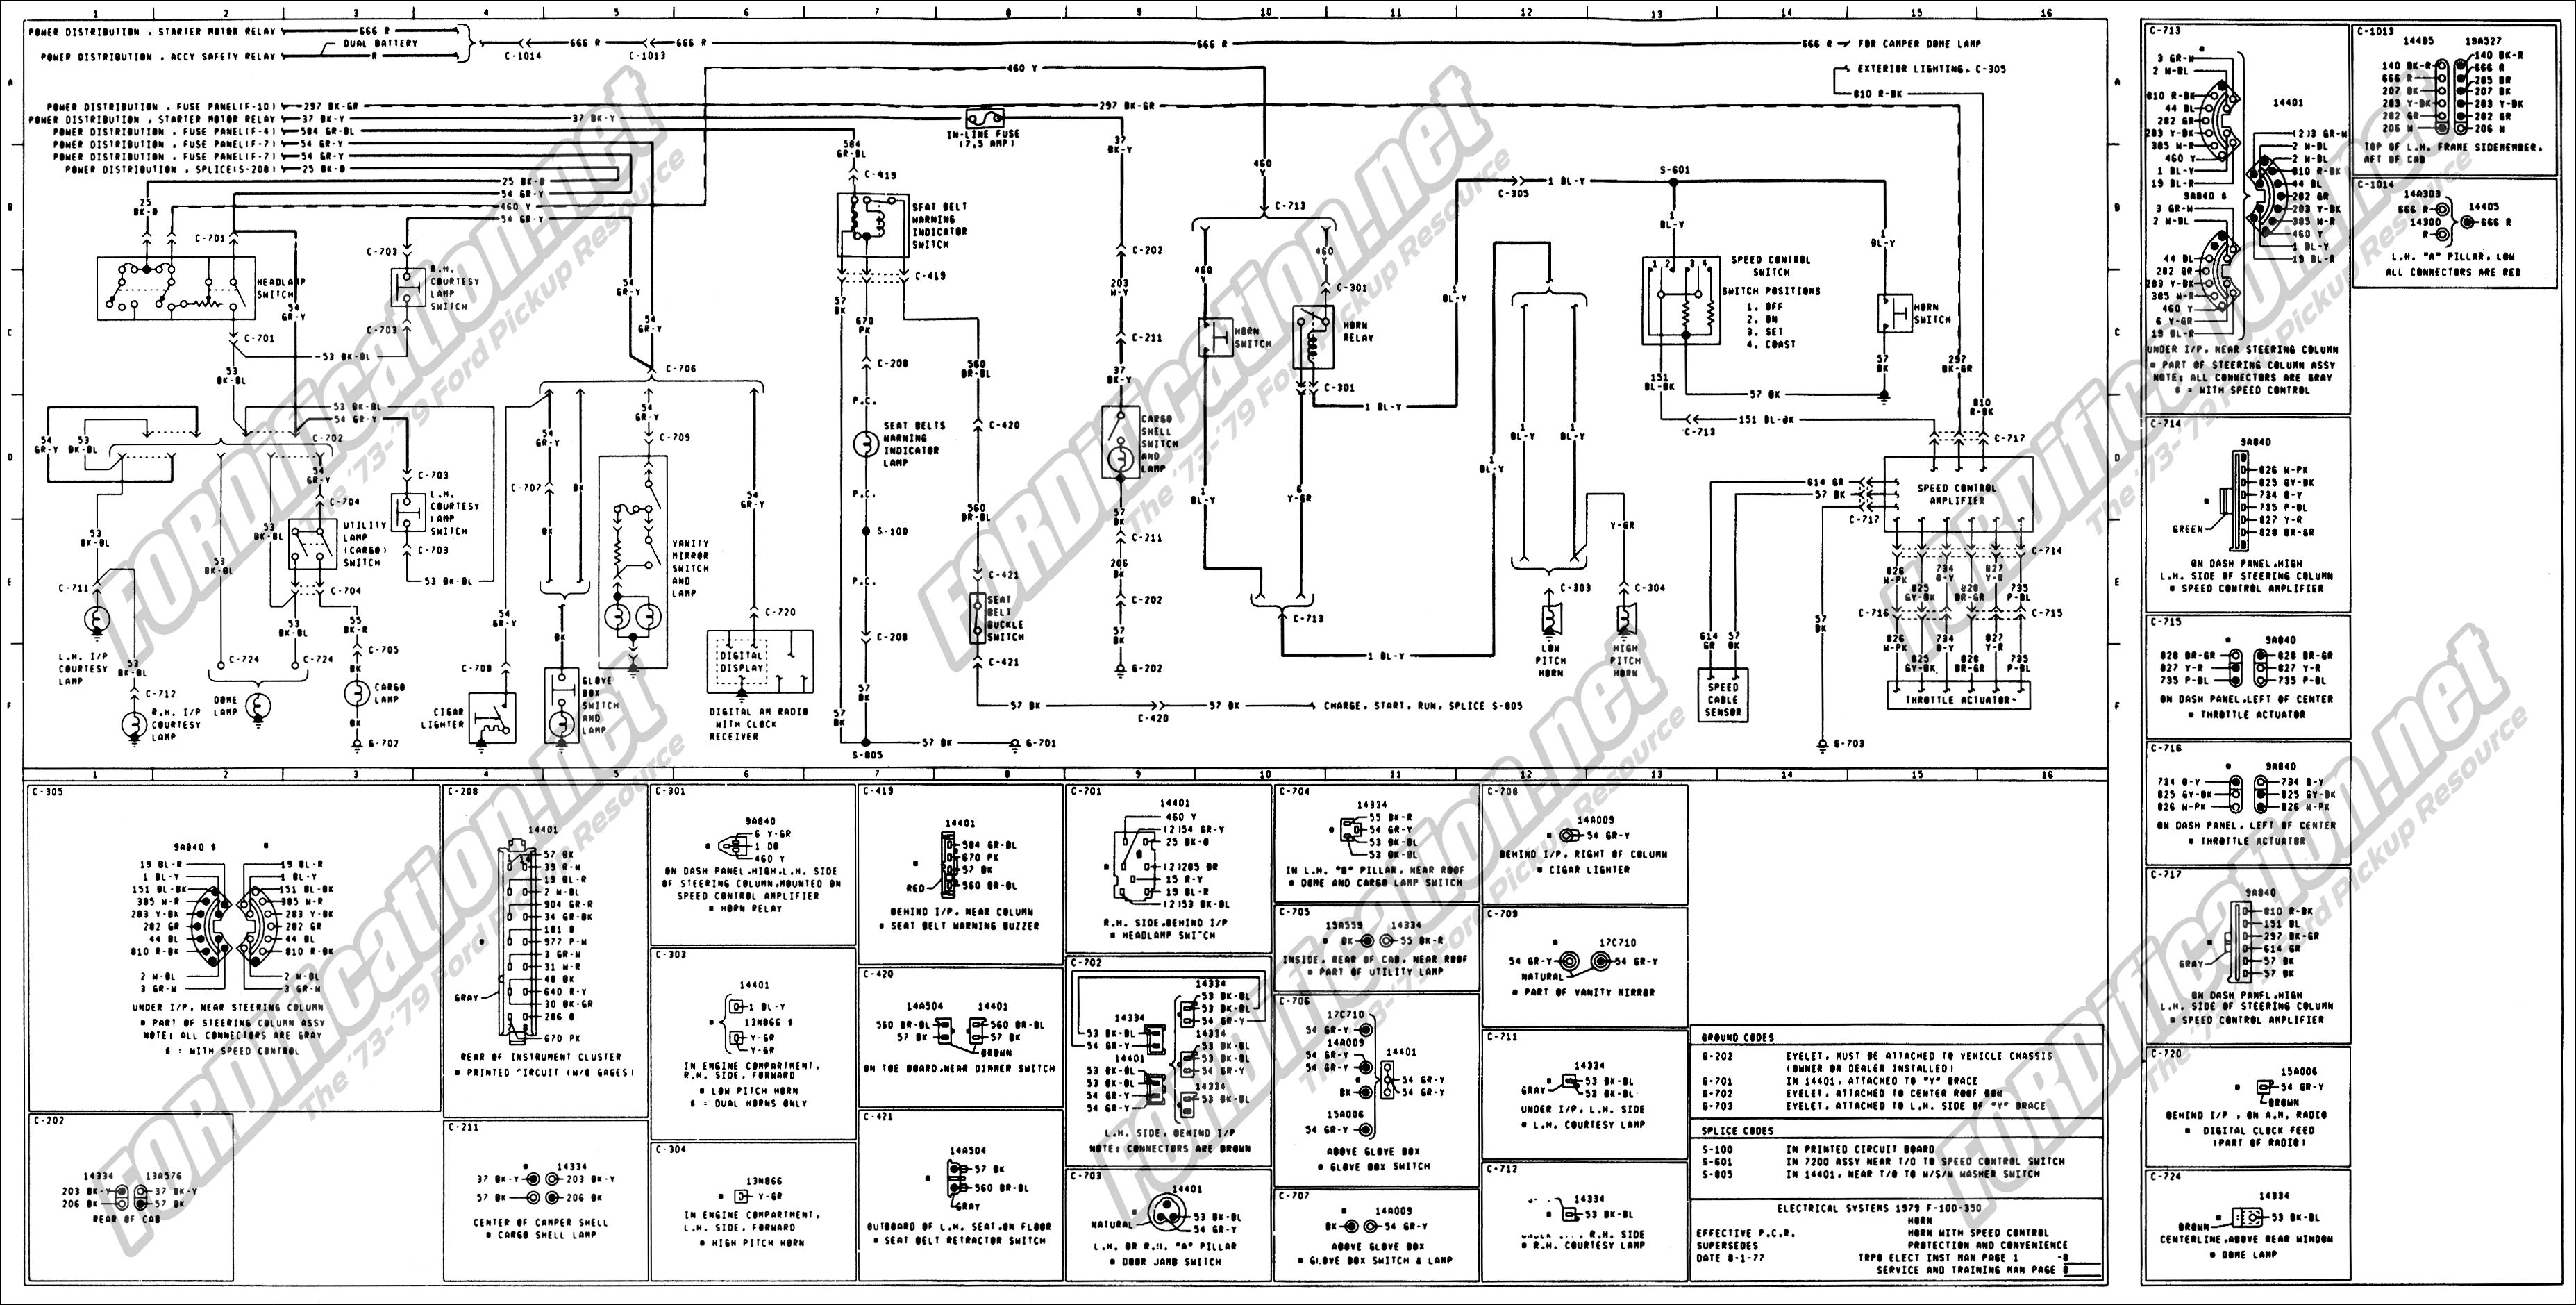 wiring_79master_8of9 1973 1979 ford truck wiring diagrams & schematics fordification net 1979 ford f150 wiring diagram at gsmportal.co